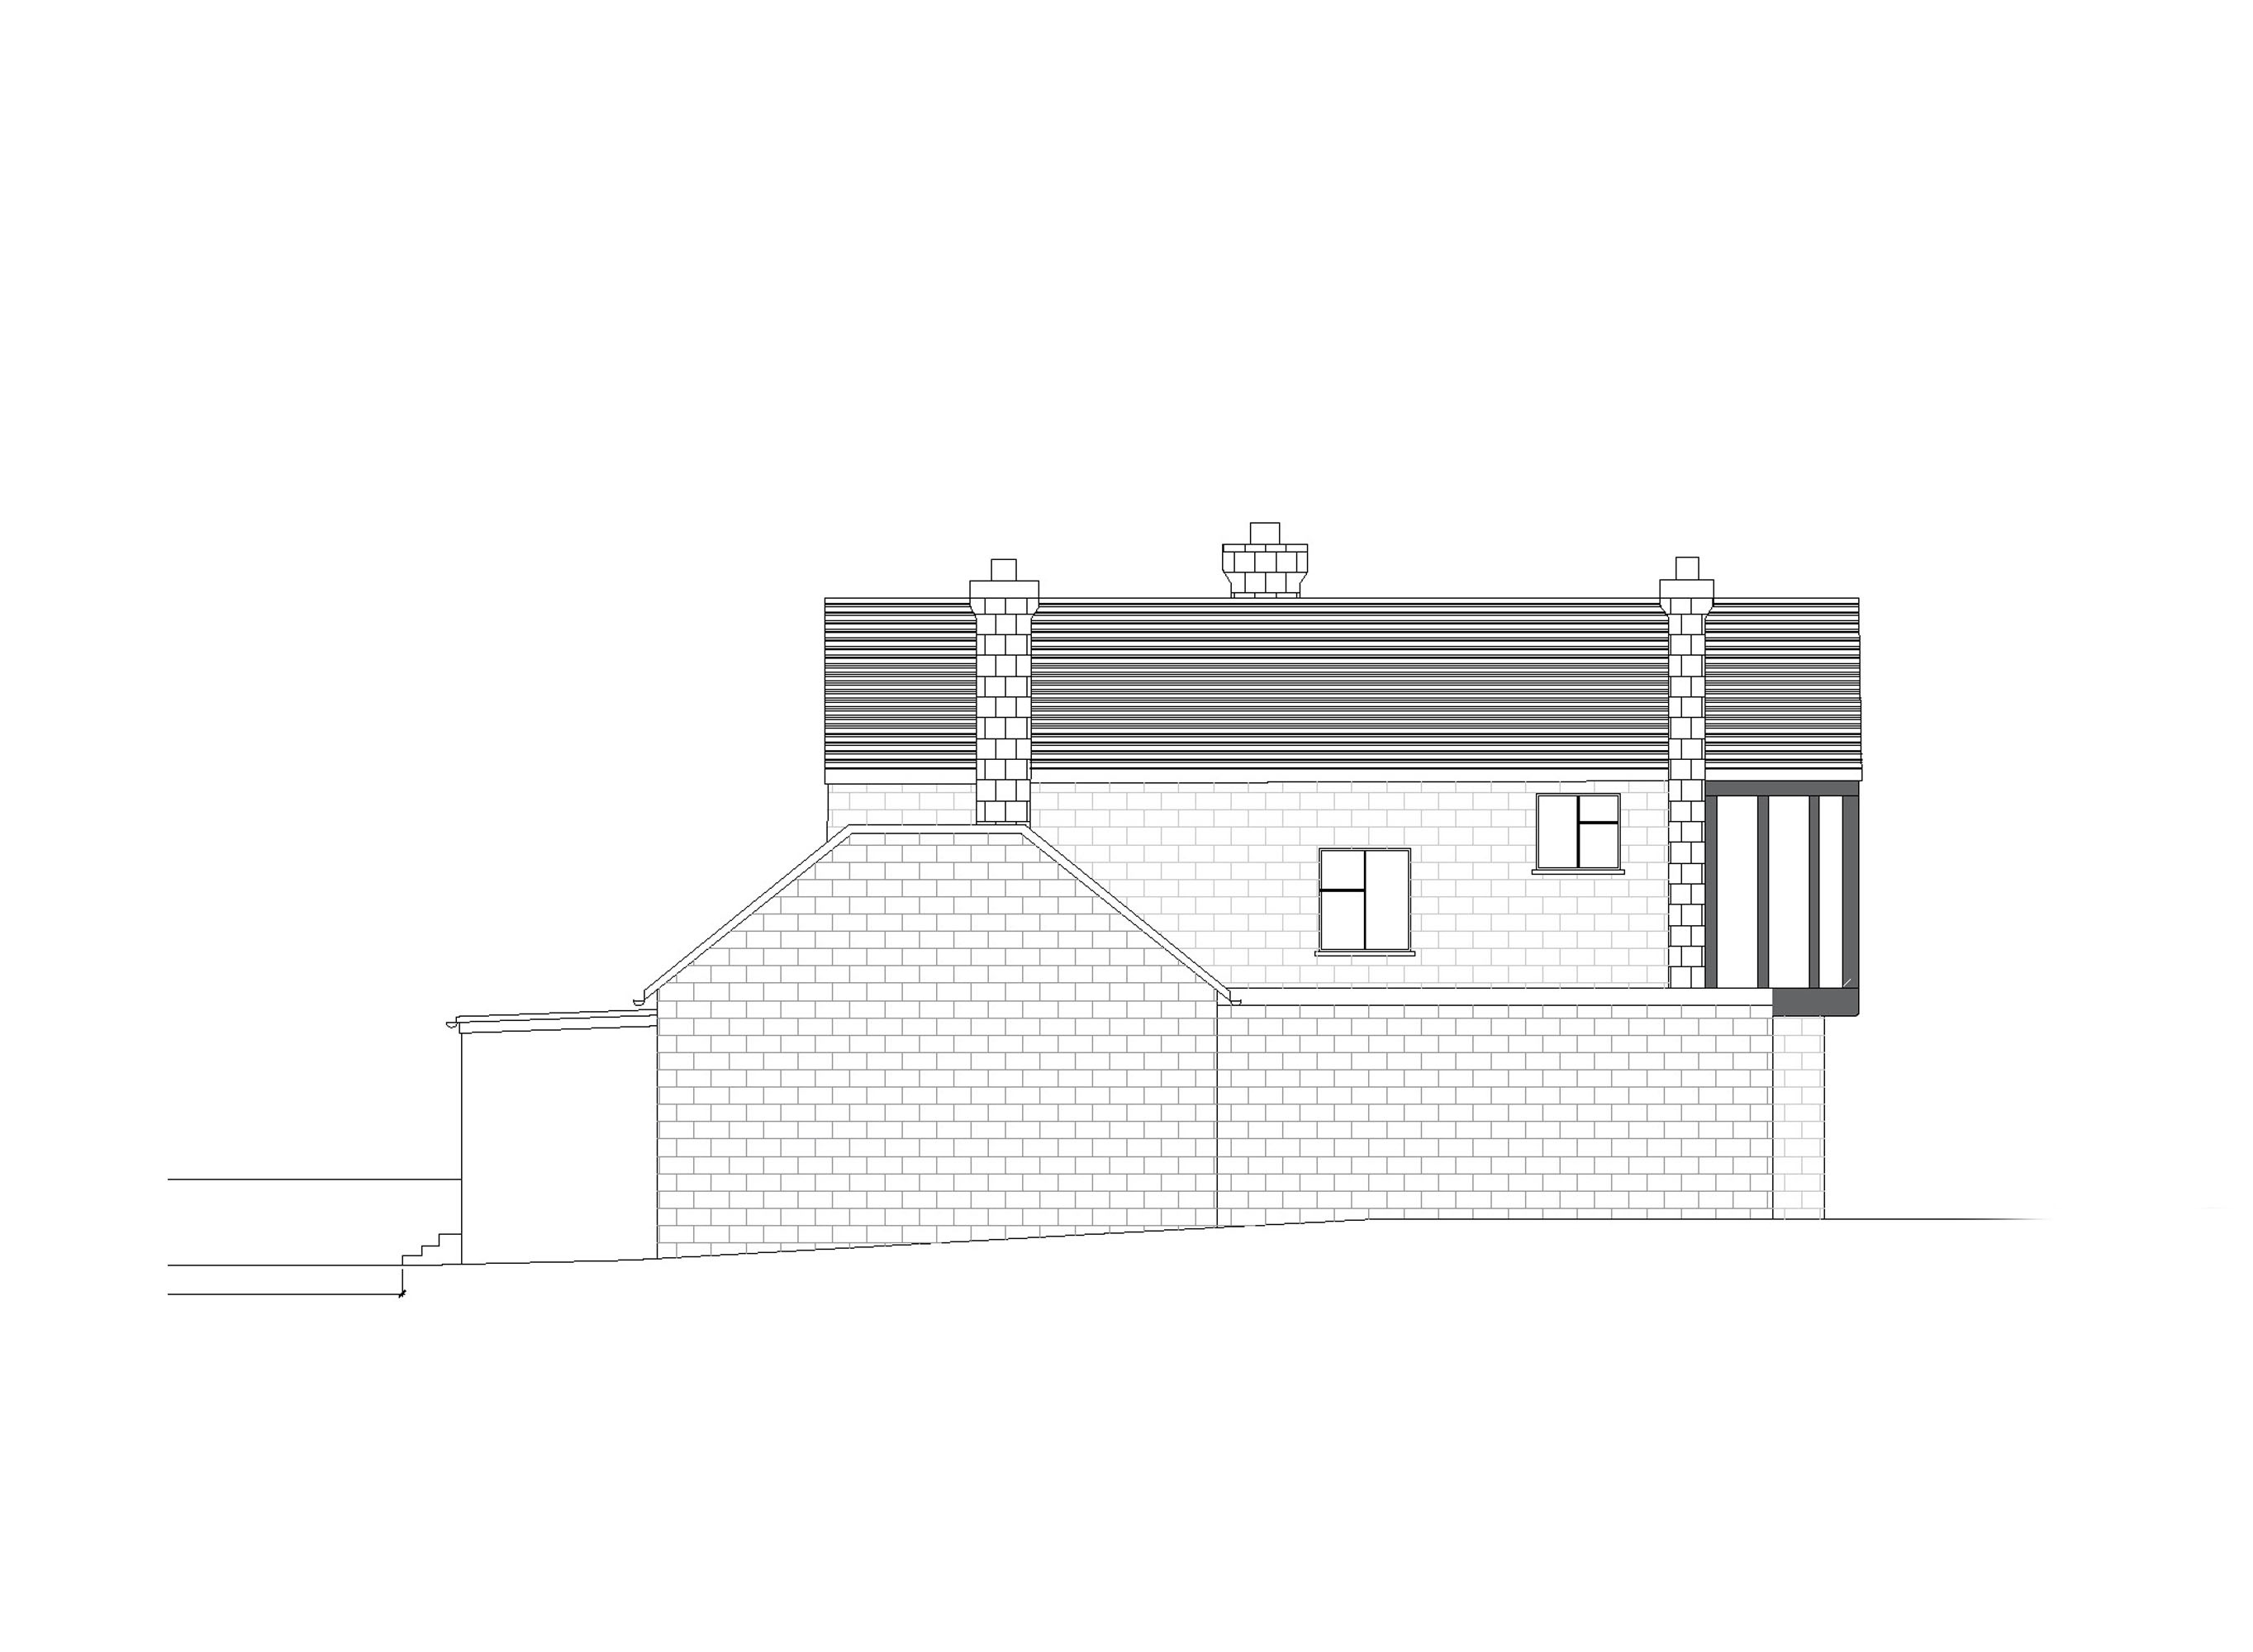 15 proposed side2 elevation